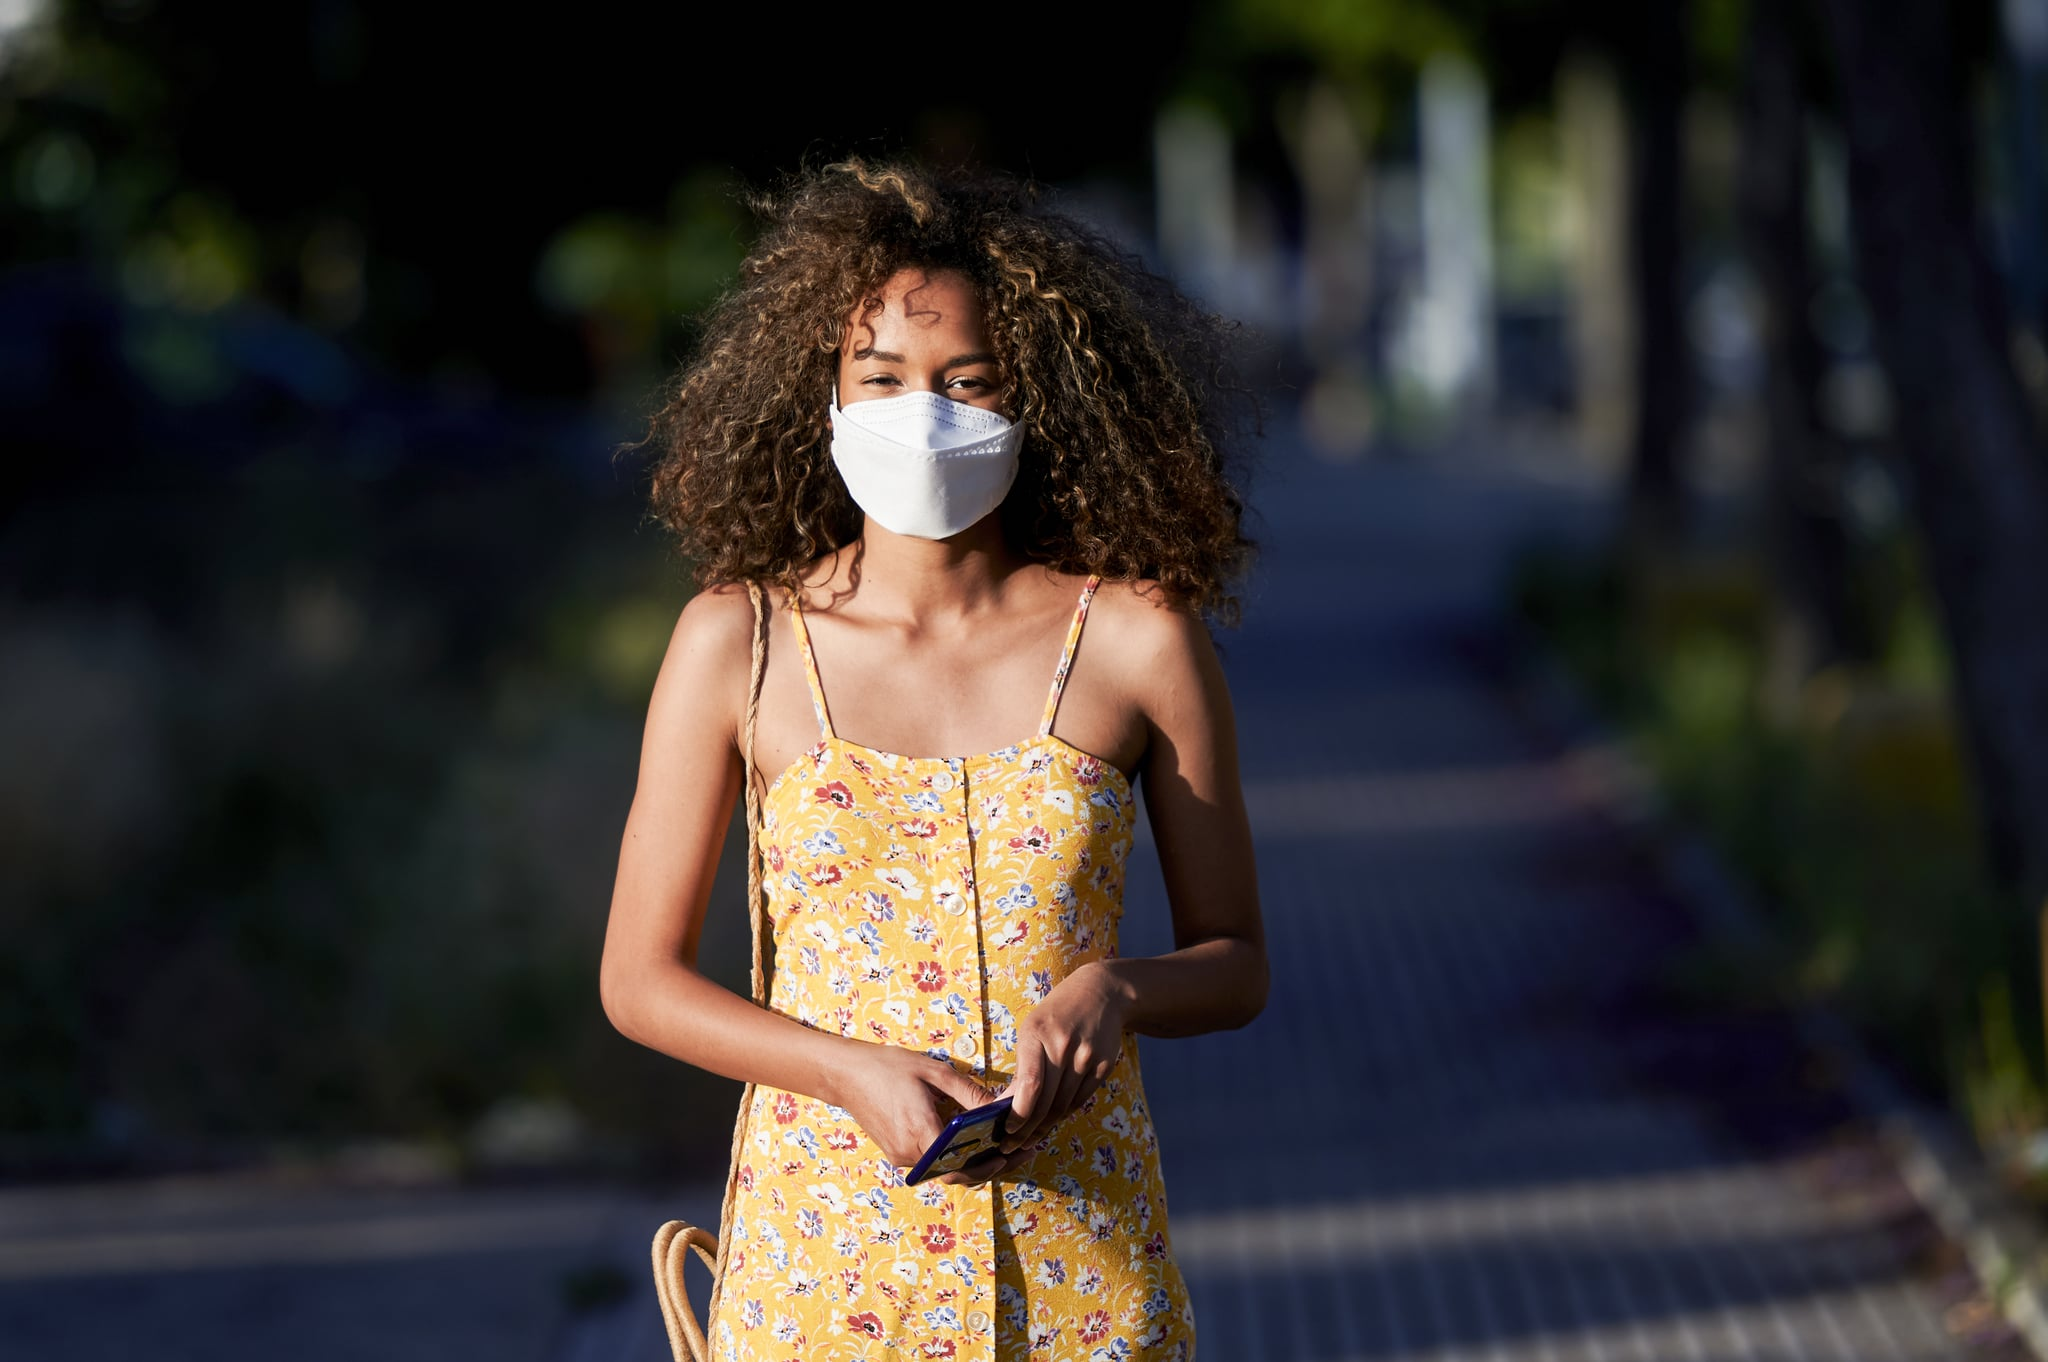 According to a Doctor: This Is How Face Masks Slow the Spread of Coronavirus